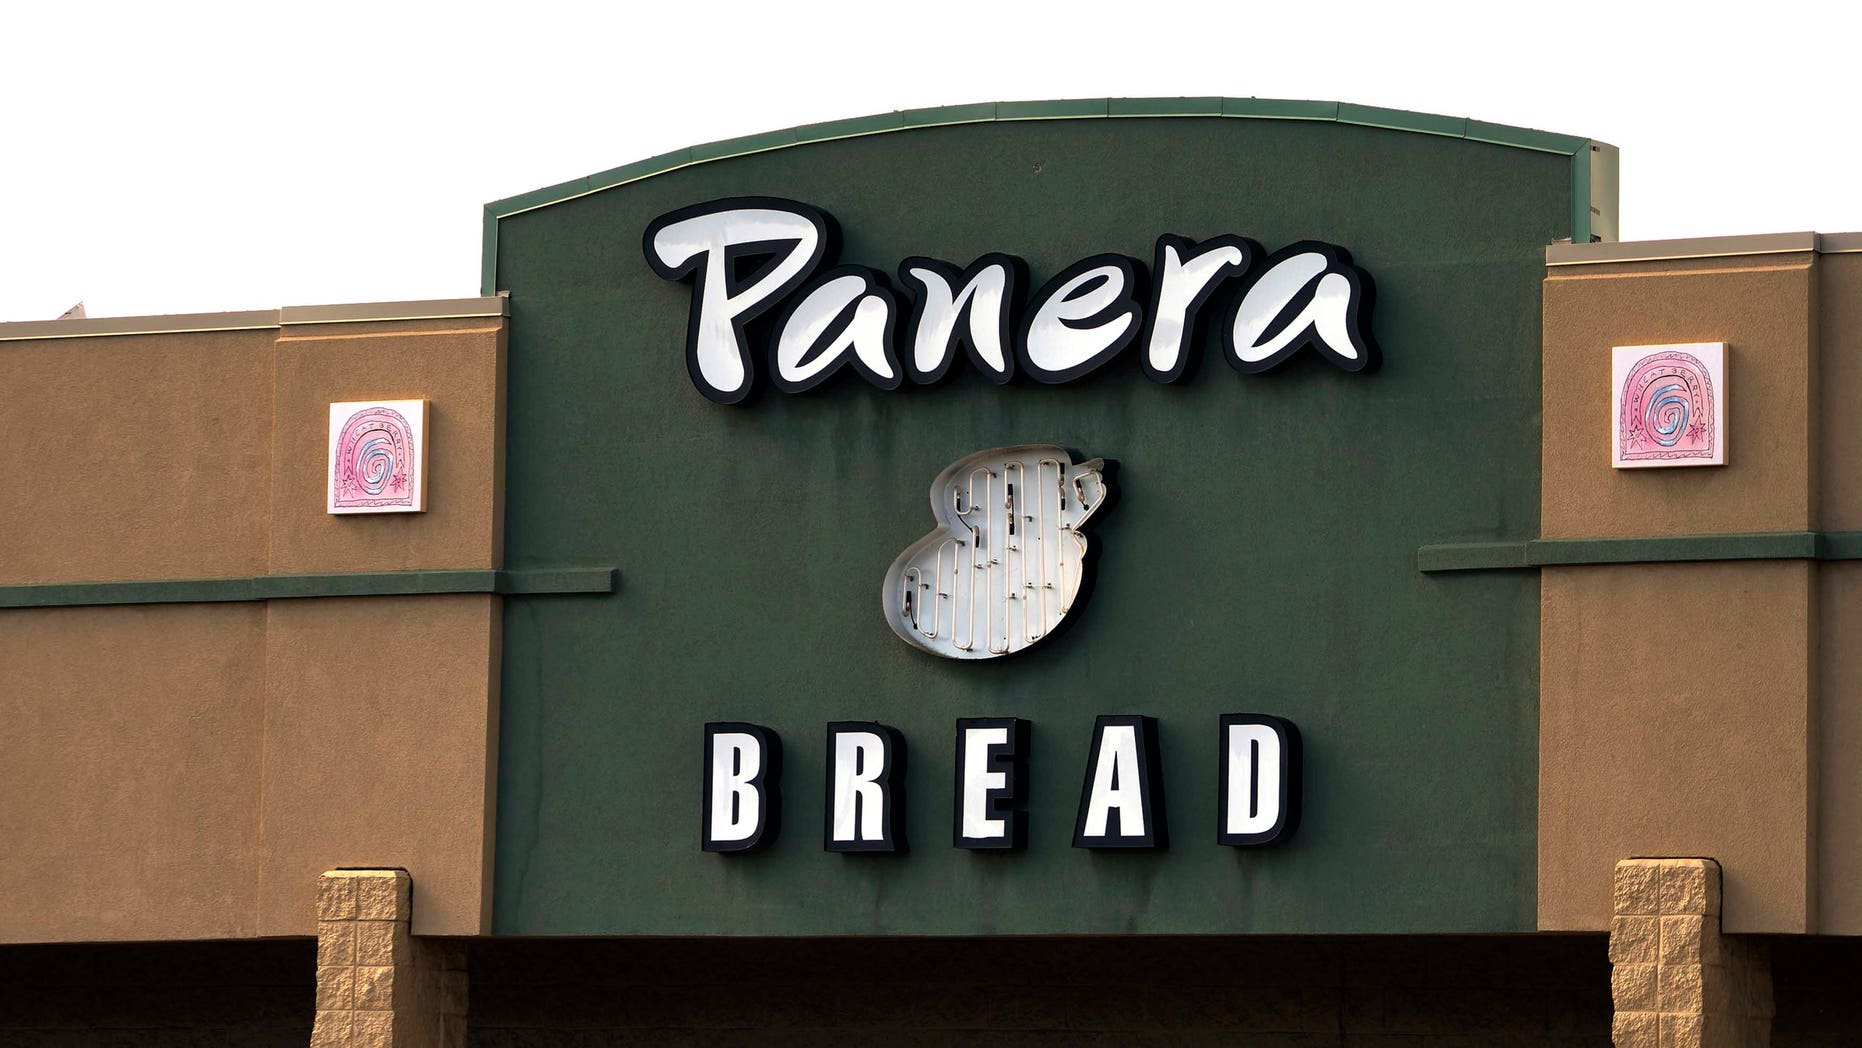 The sign on the hood of a delivery truck for Panera Bread Co. is seen in Westminster, Colorado February 11, 2015. Panera Bread Co was to issue its Q4 2014 Earnings Release on Wednesday.  REUTERS/Rick Wilking (UNITED STATES - Tags: BUSINESS FOOD) - RTR4P7MM